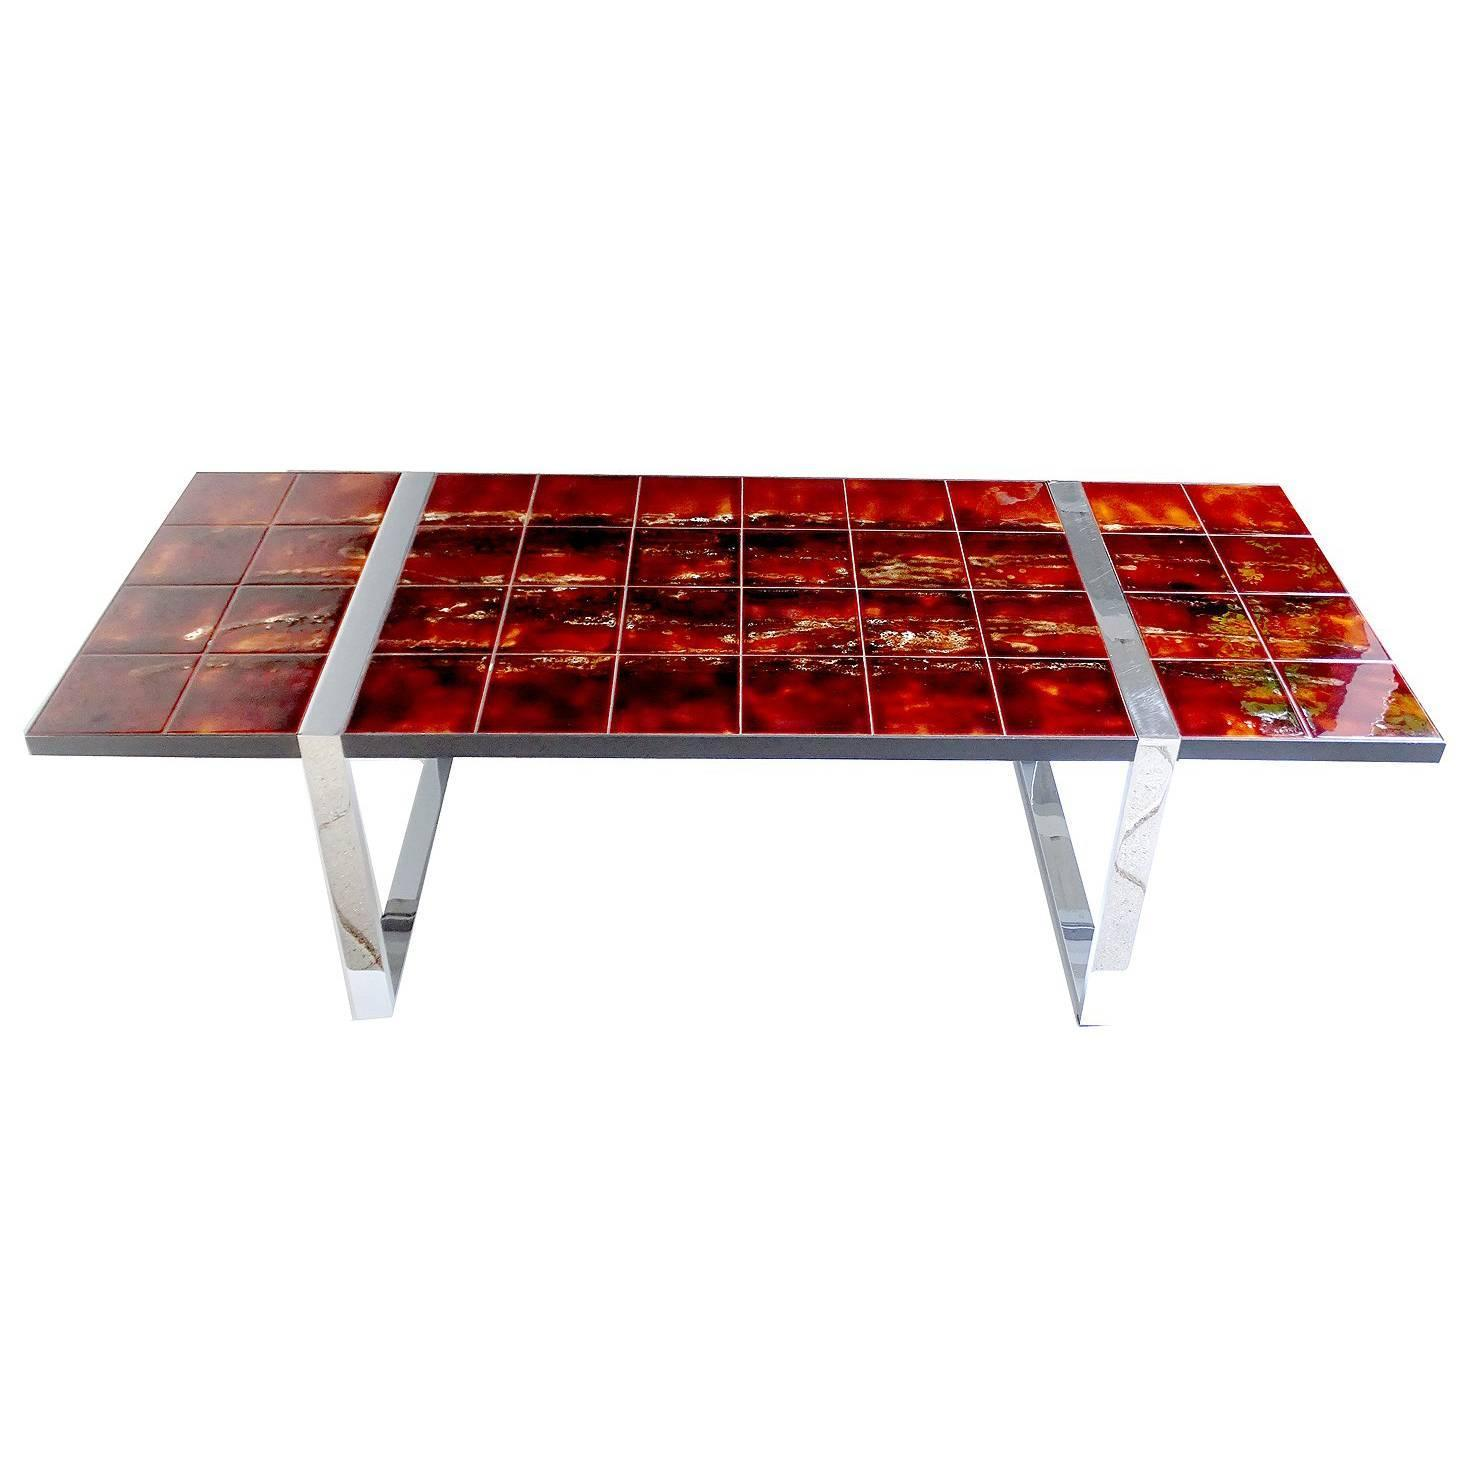 Belarti Coffee Table with Two Side Tables with Hand Painted Tiles